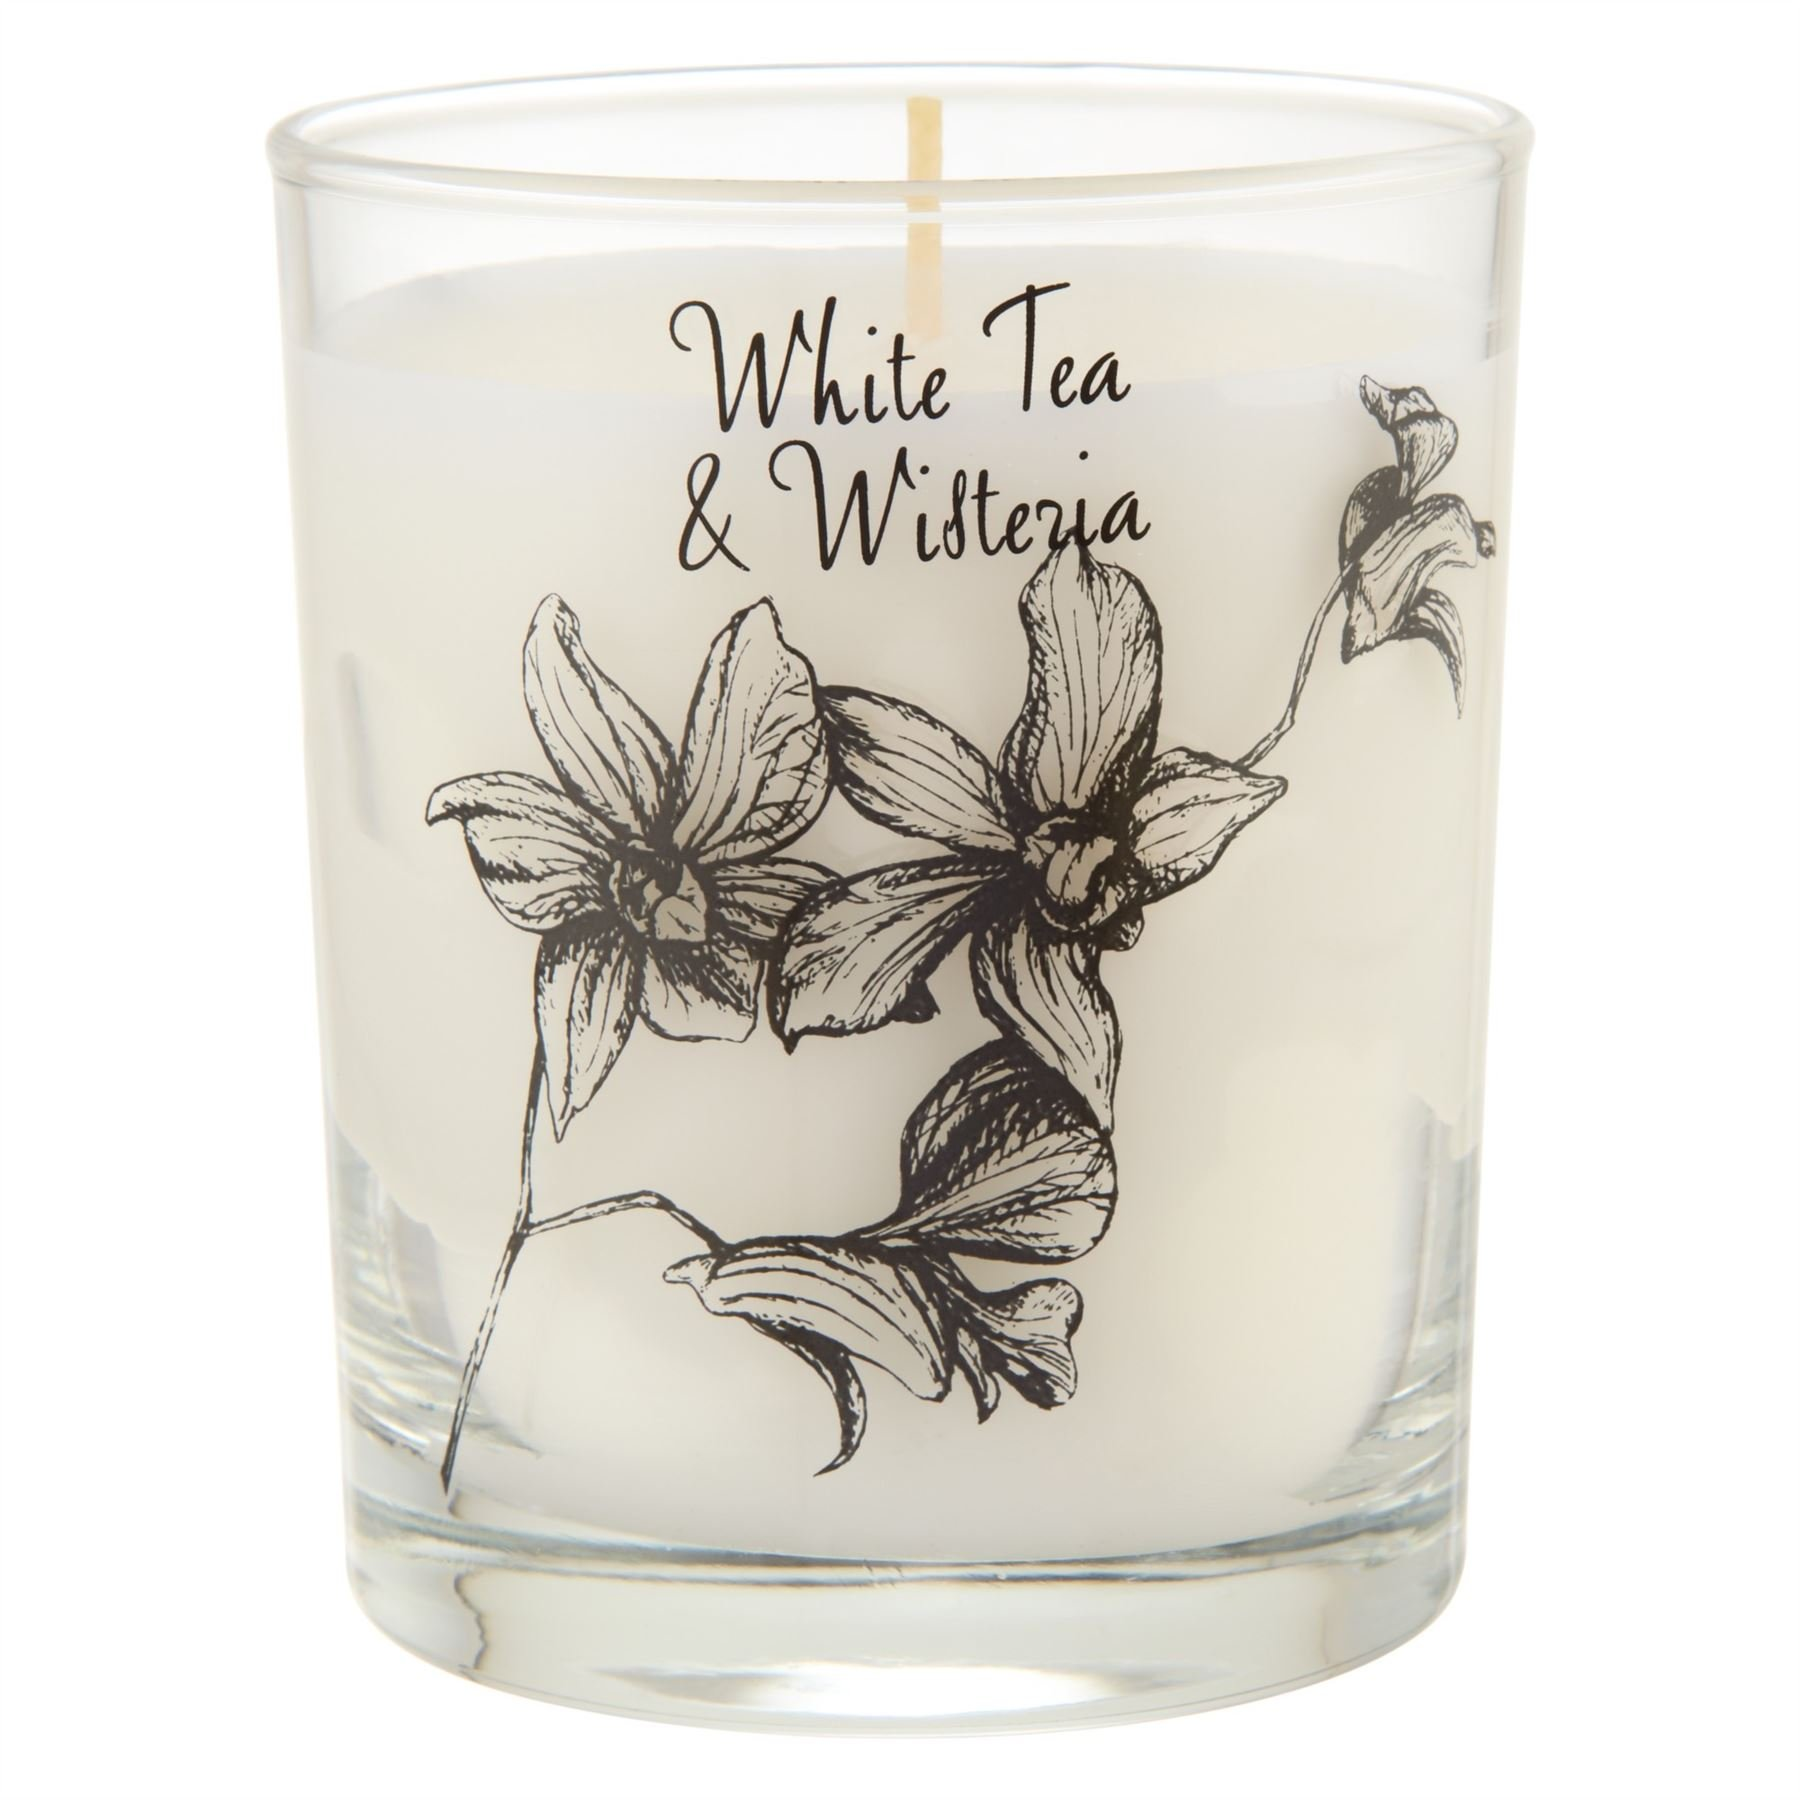 Stoneglow Scented Candle in a Jar White Tea & Wisteria - Pack of 6